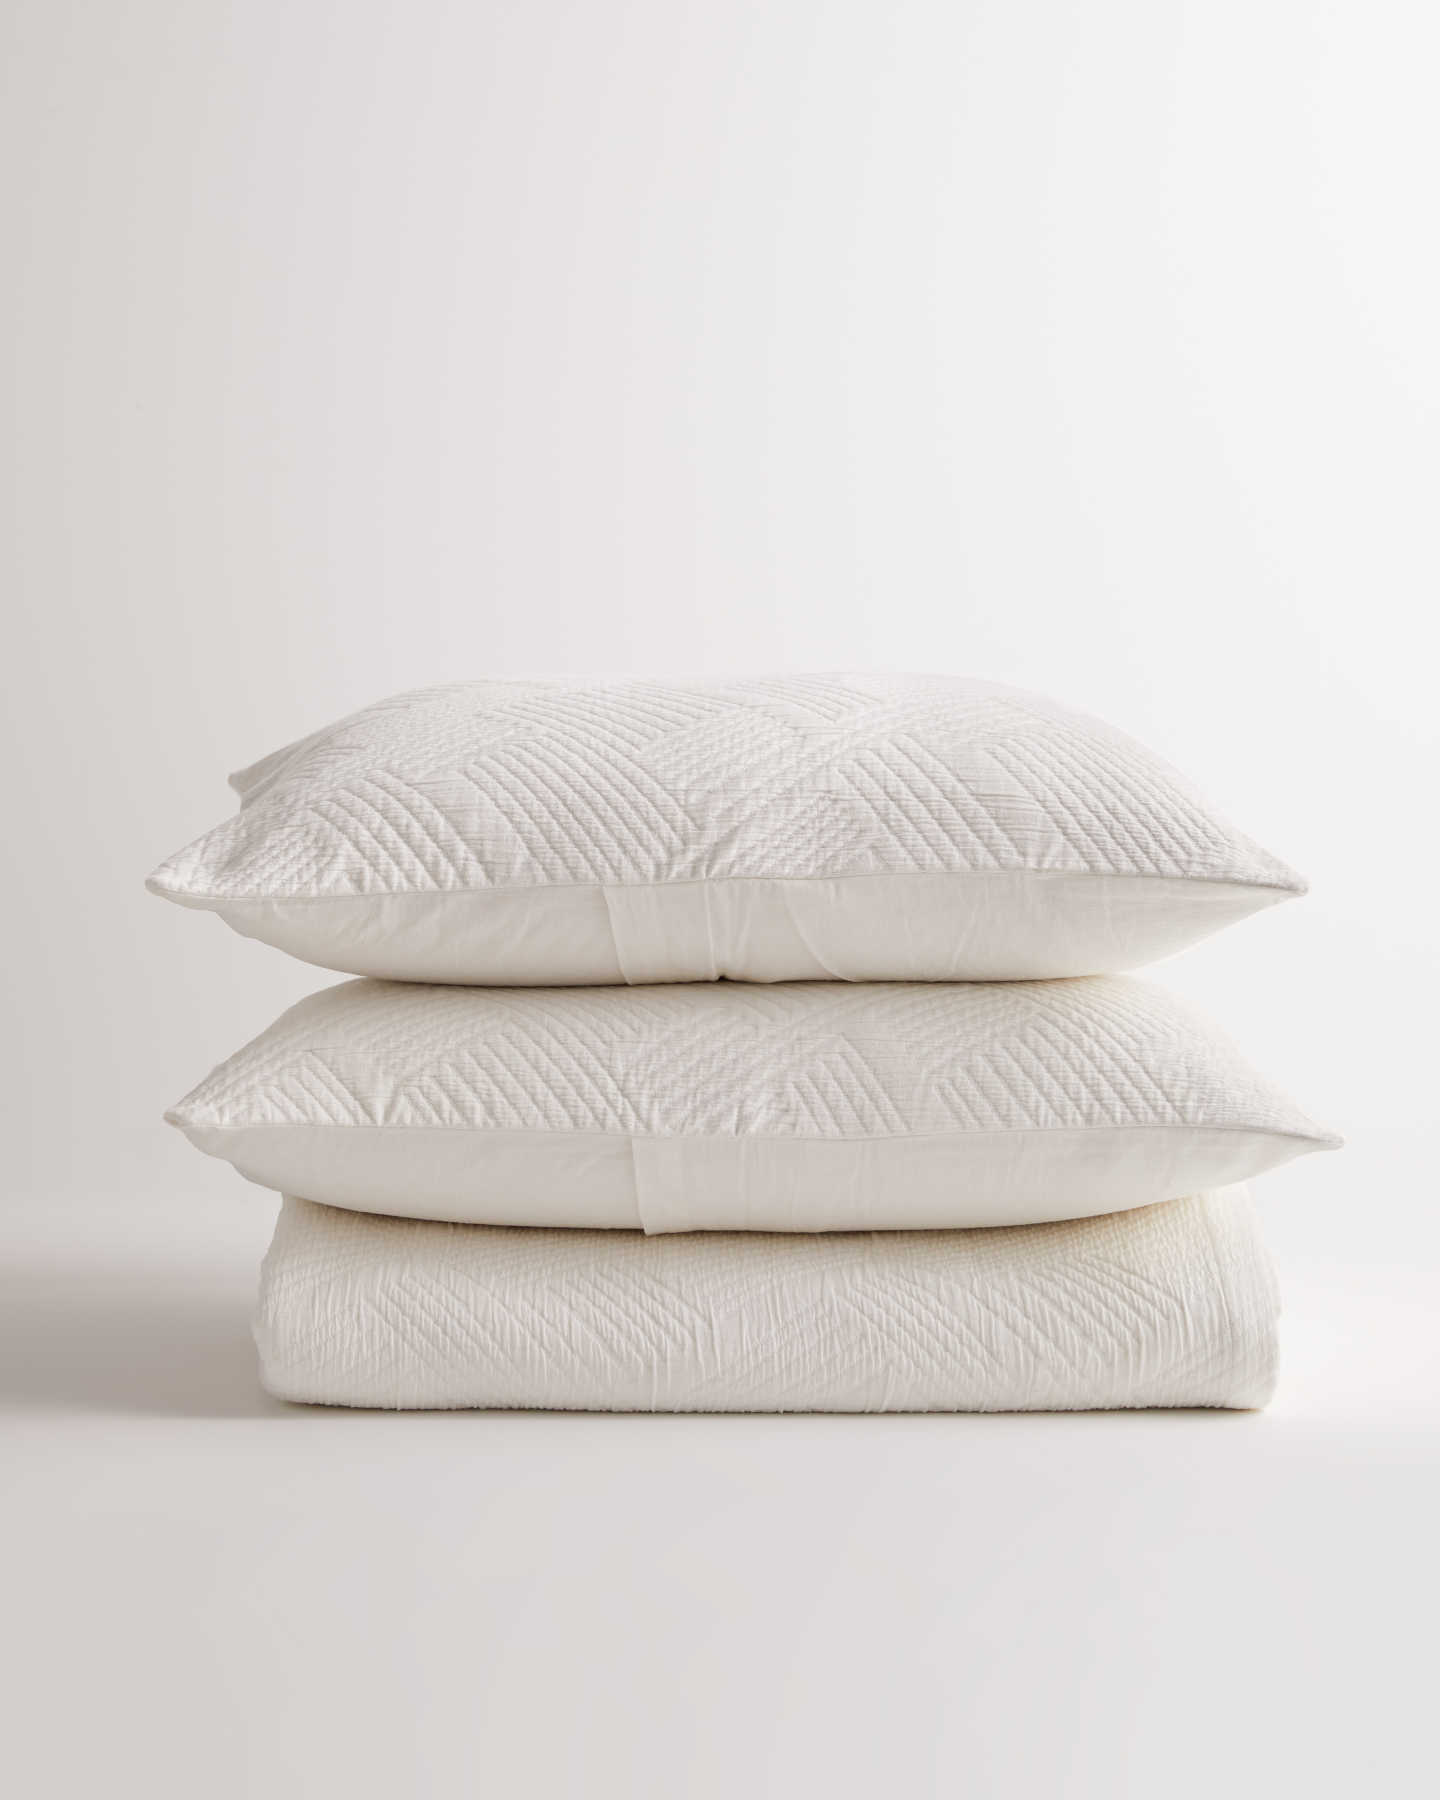 Pair With - Organic Cotton Matelasse Coverlet Set - White